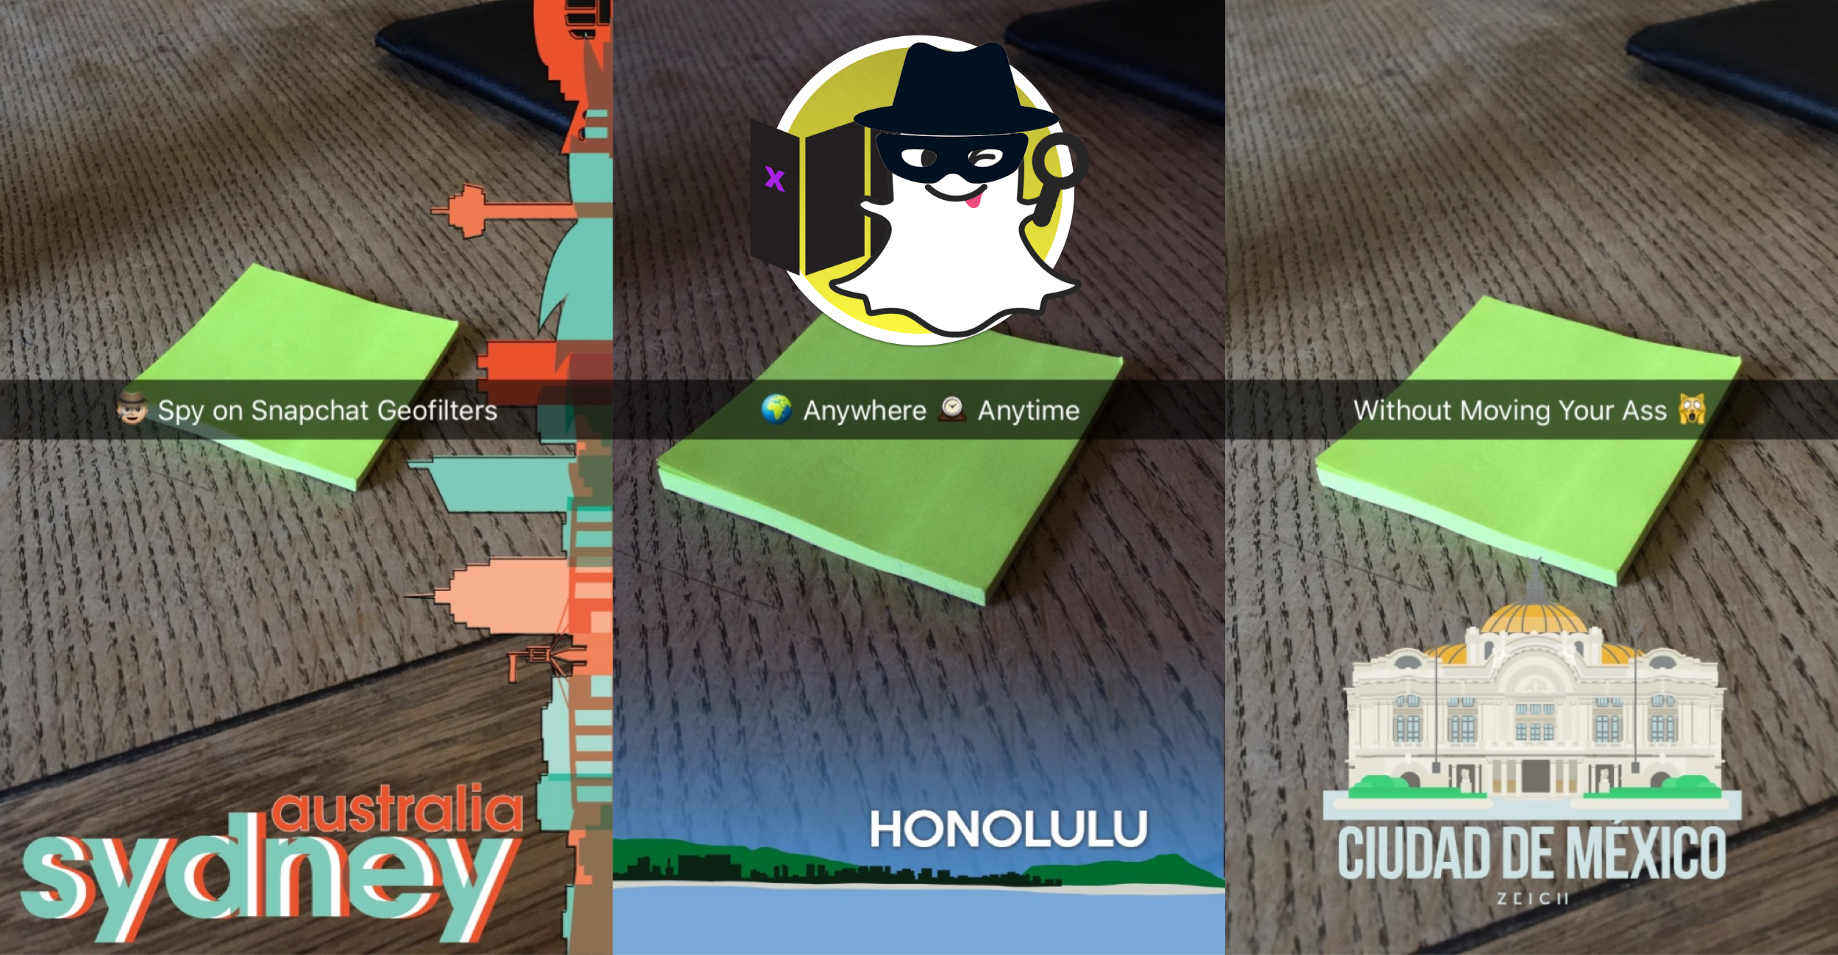 Change your Snapchat Location Without Jailbreak to Spy on Geofilters